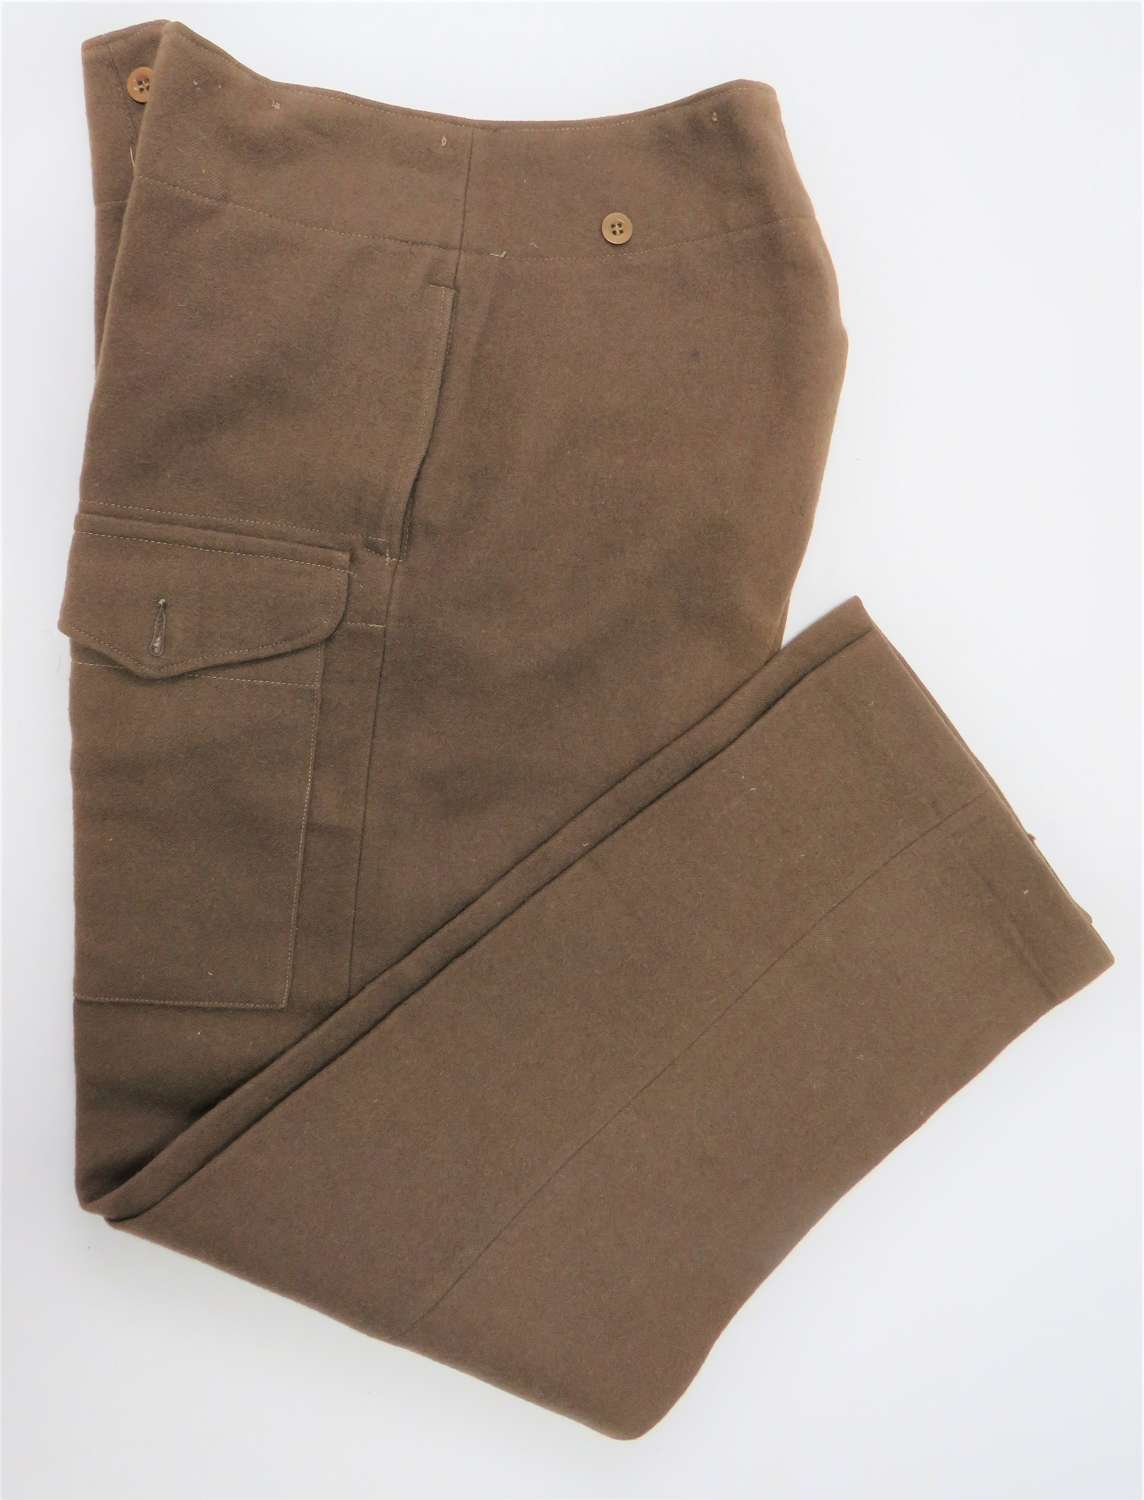 Pair of 1940 Pattern Officer Private Purchase Battledress Trousers